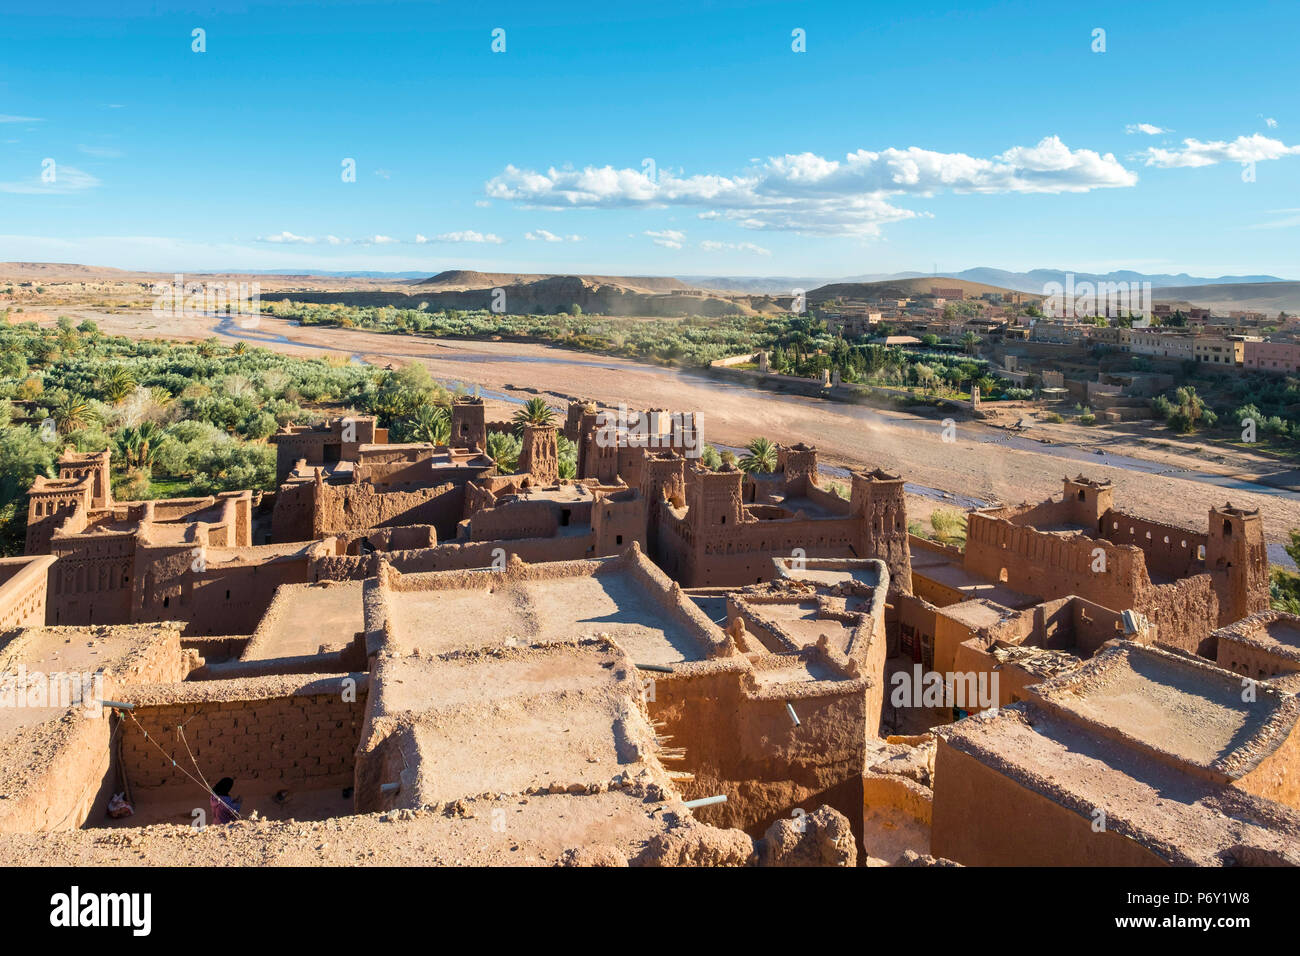 Morocco, Sous-Massa (Sous-Massa-Draa), Ouarzazate Province. View from uppter village inside of Ksar of Ait Ben Haddou (Ait Benhaddou). - Stock Image